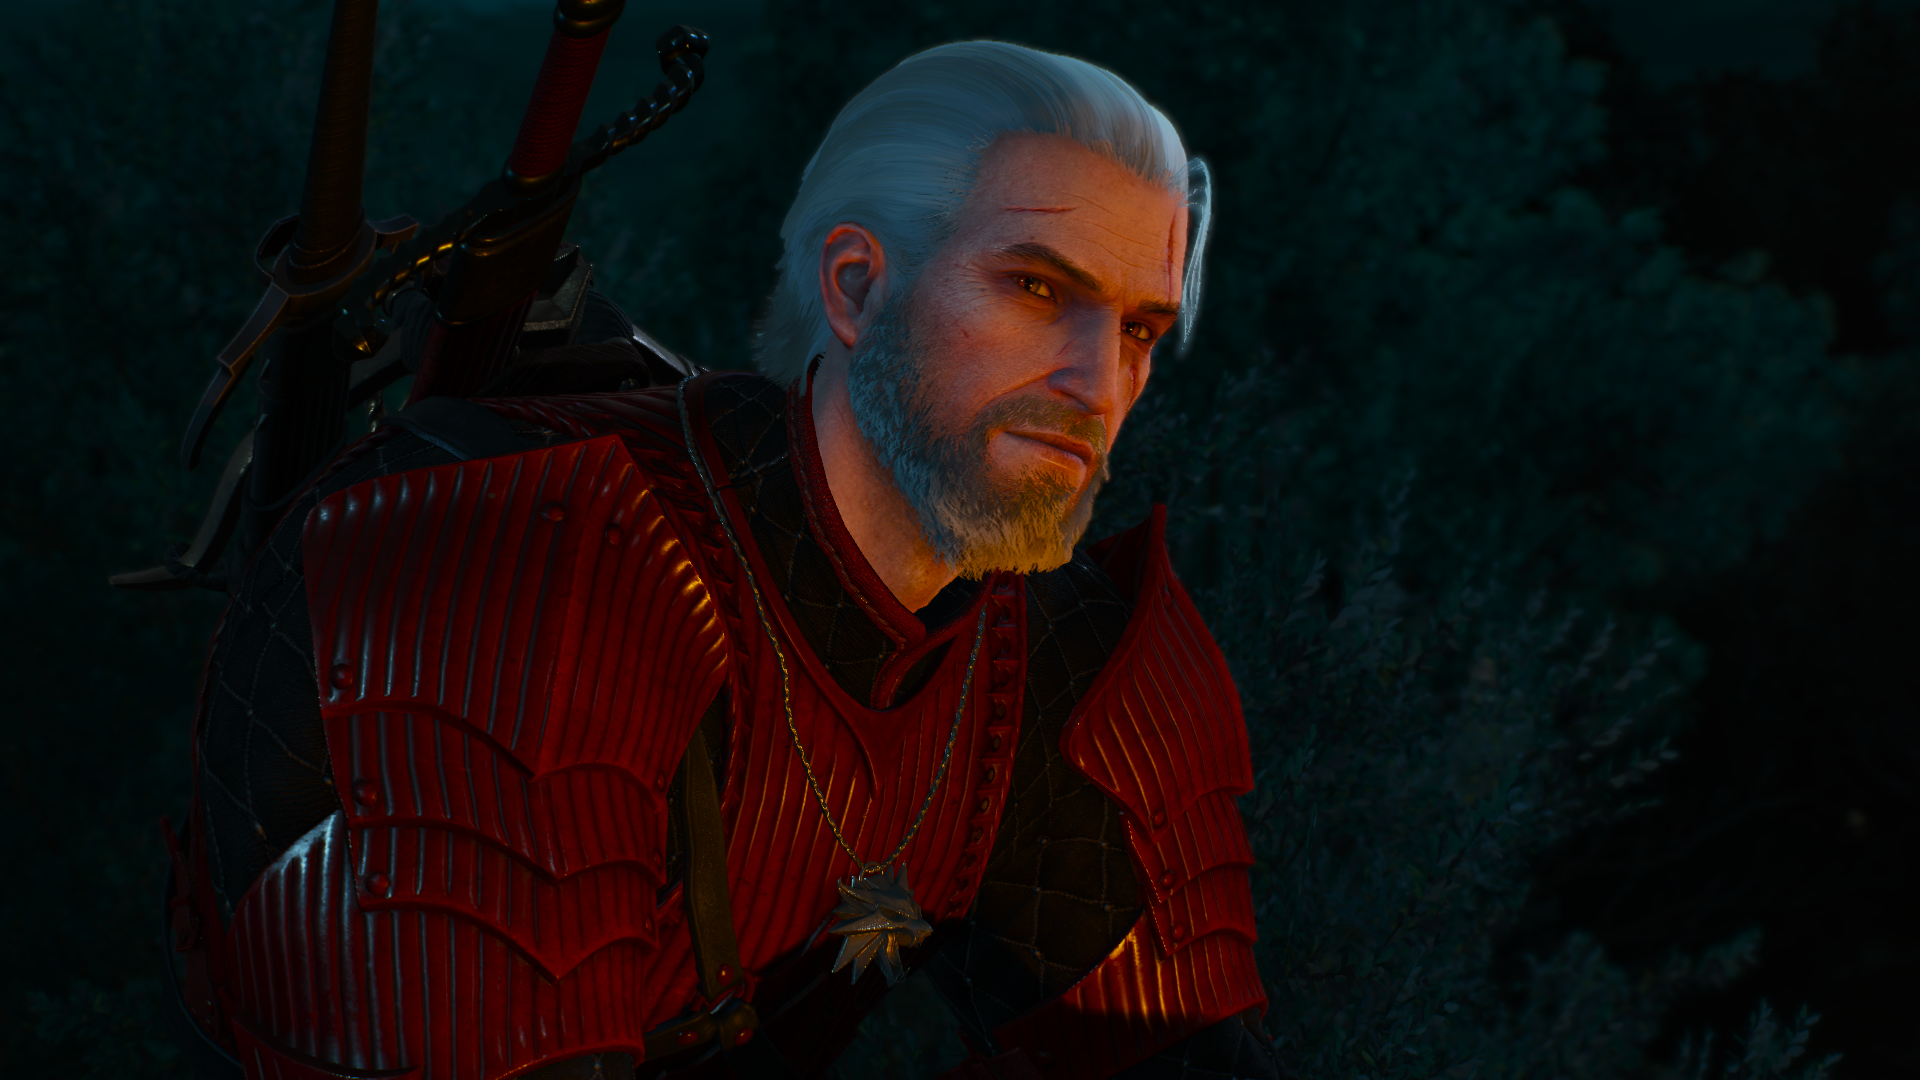 The Witcher 3 06.01.2019 15_17_59.png - Witcher 3: Wild Hunt, the